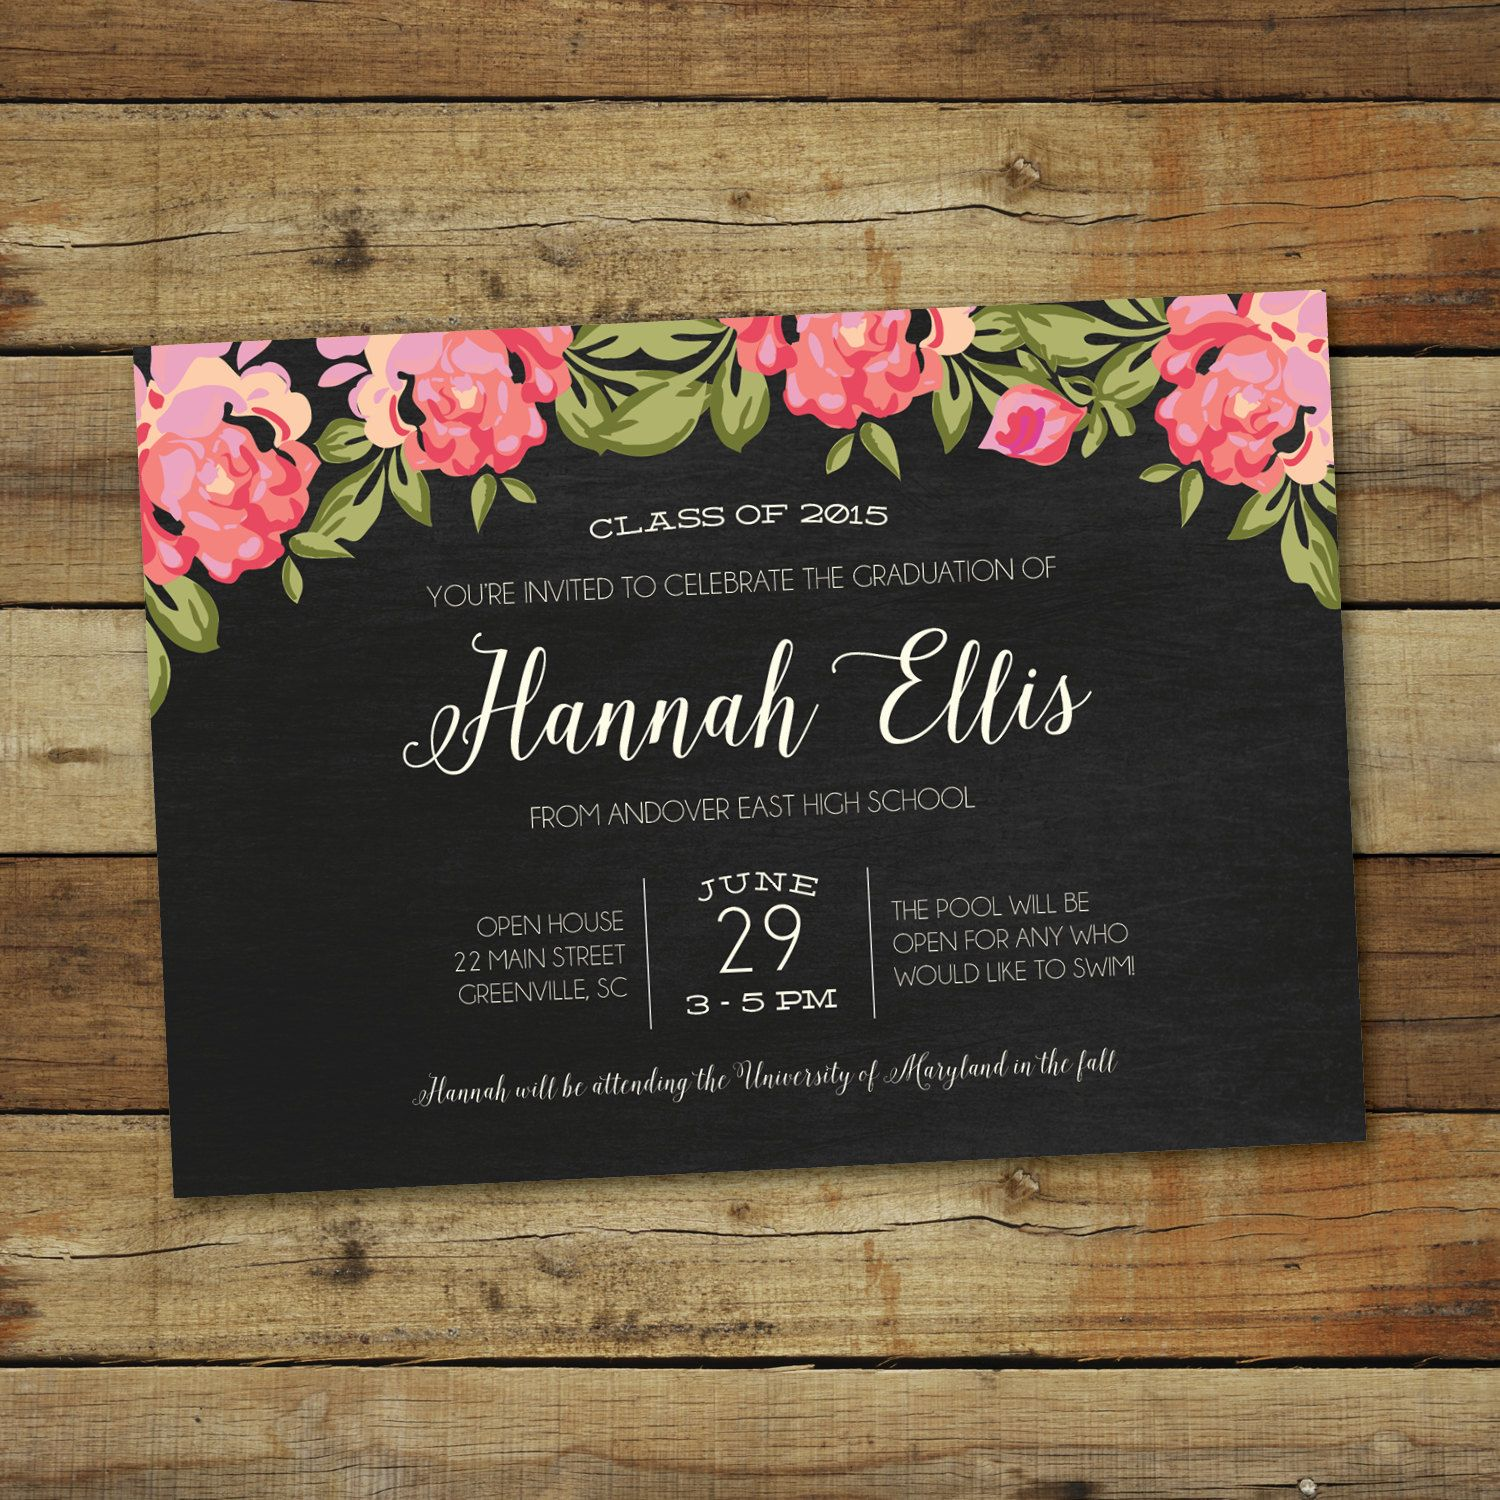 Floral graduation party invitation chalkboard style printable floral graduation party invitation chalkboard style printable graduation open house or graduation party invite card class of 2015 by saralukecreative on filmwisefo